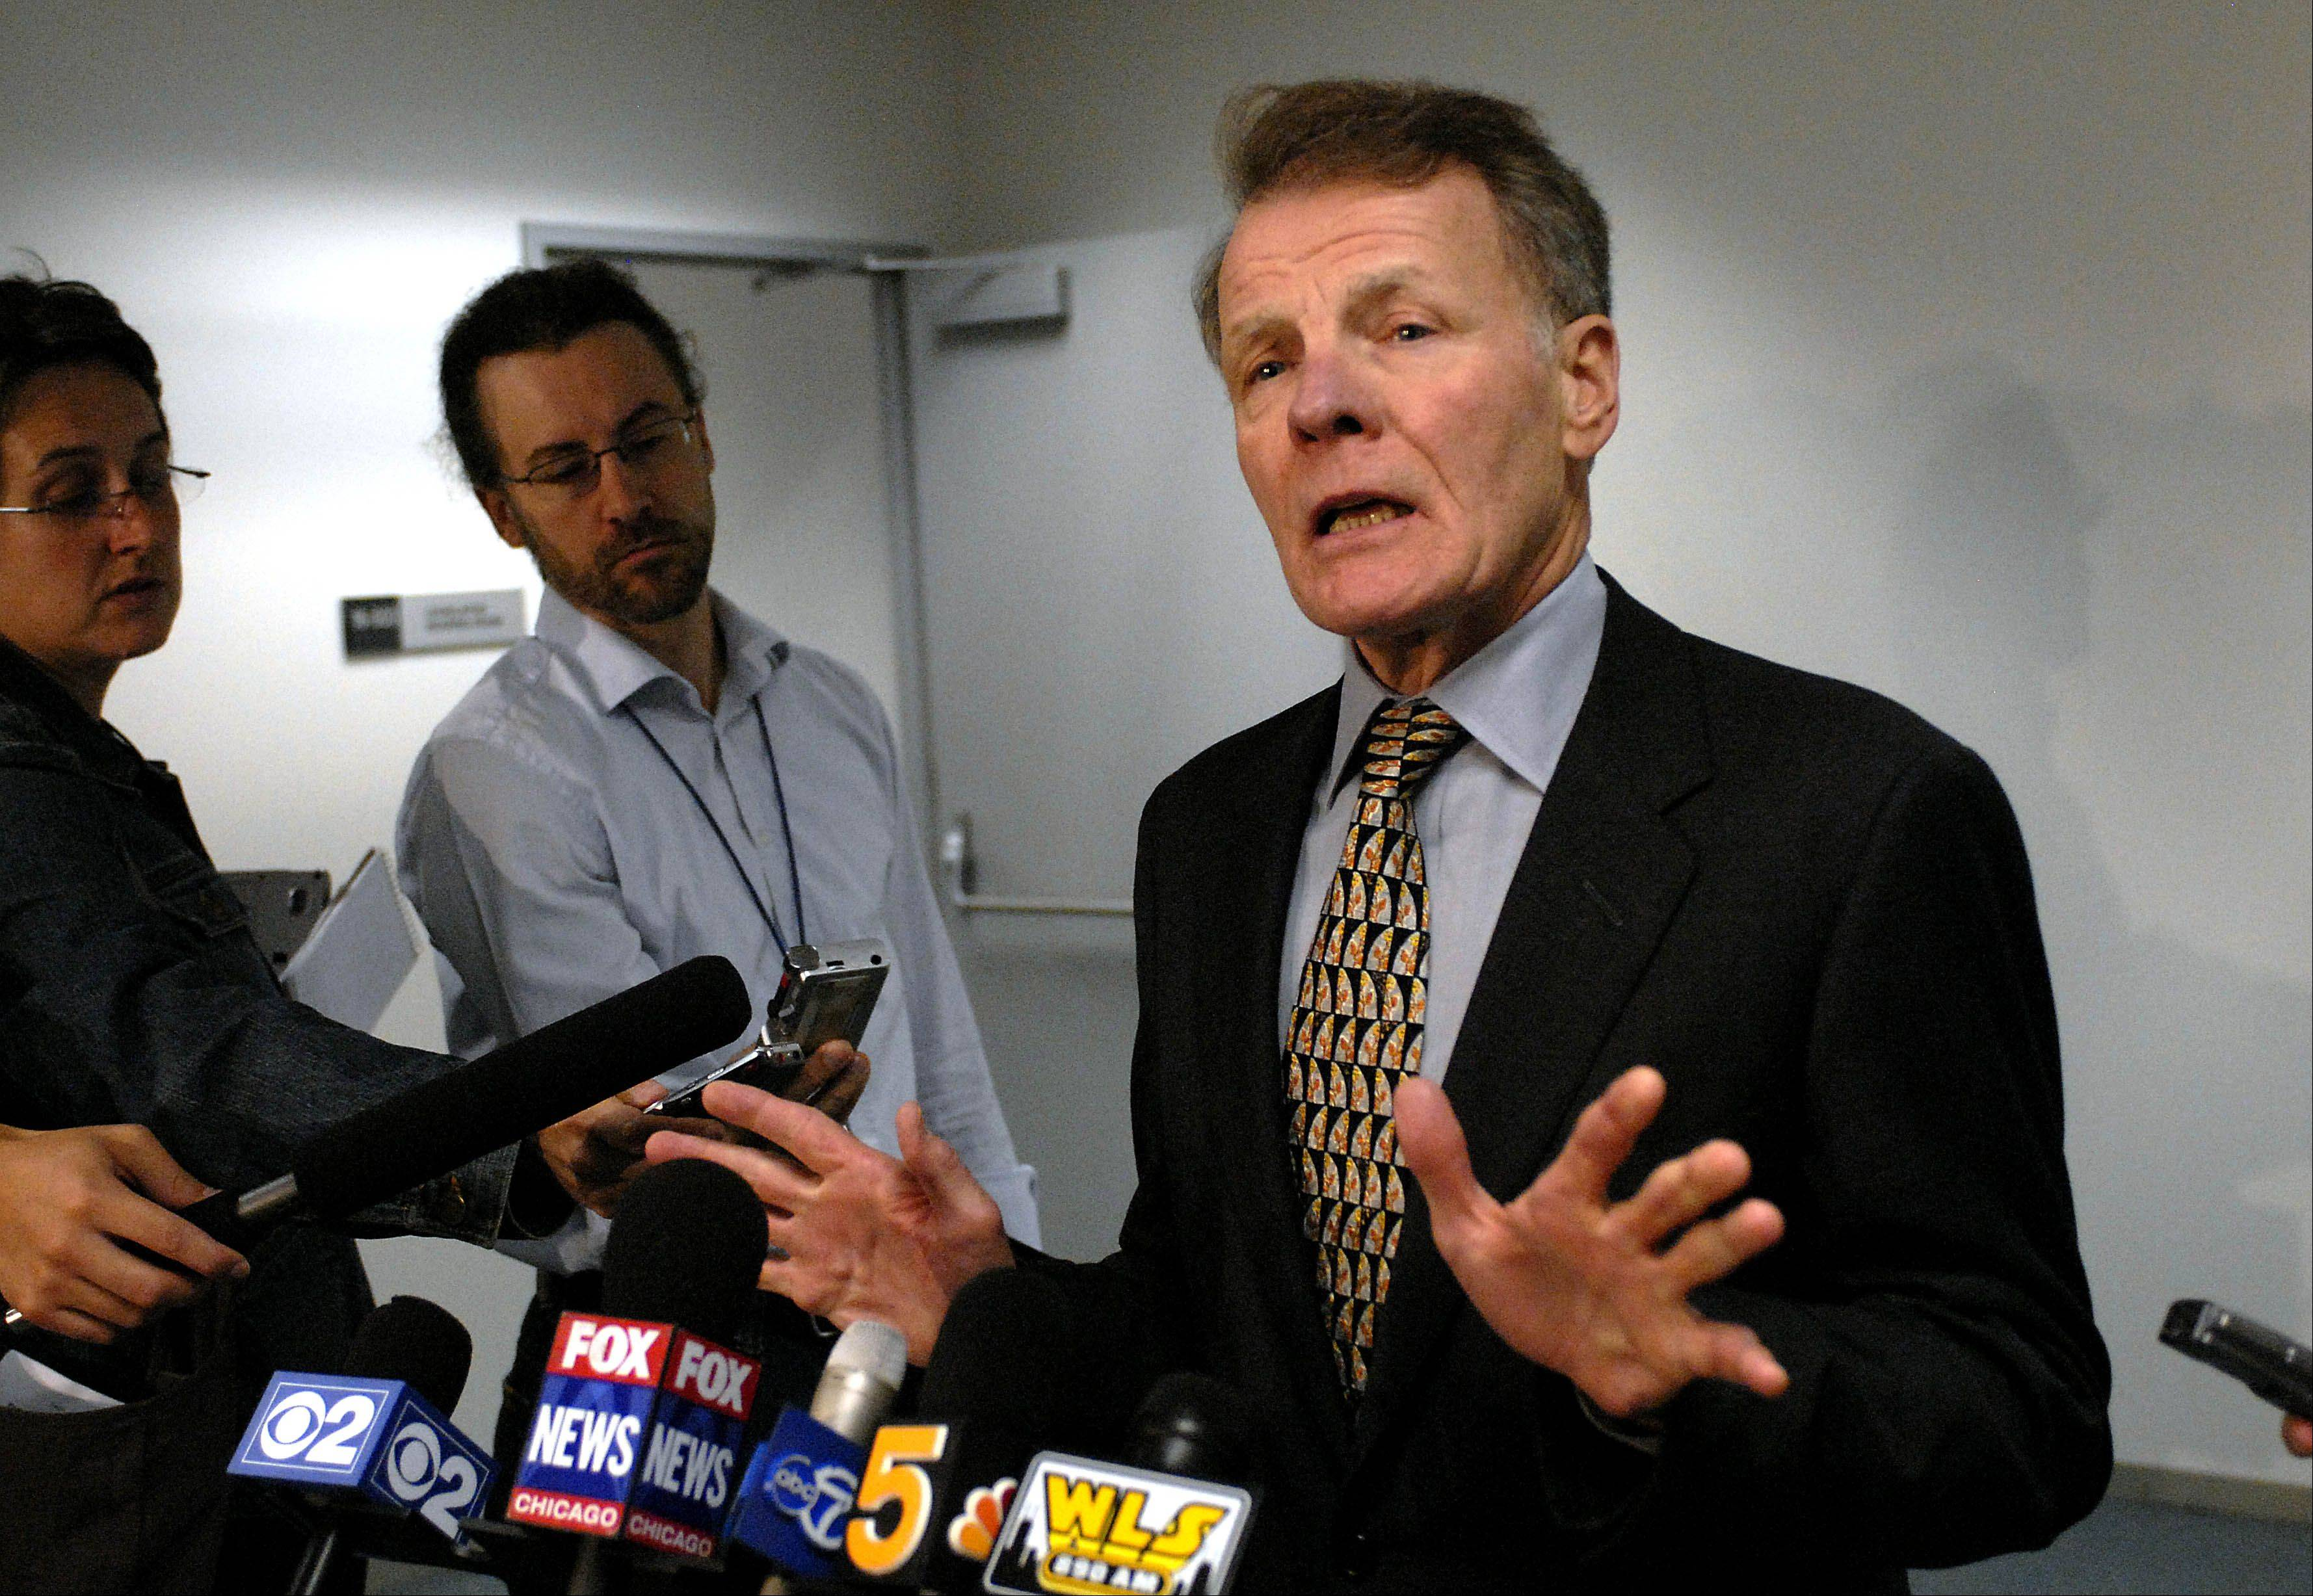 House Speaker Michael Madigan Tuesday backed a pension plan that would raise the retirement age for public employees, cut retirees' annual pension raises and cap how much of a worker's salary could count toward calculating his or her pension.